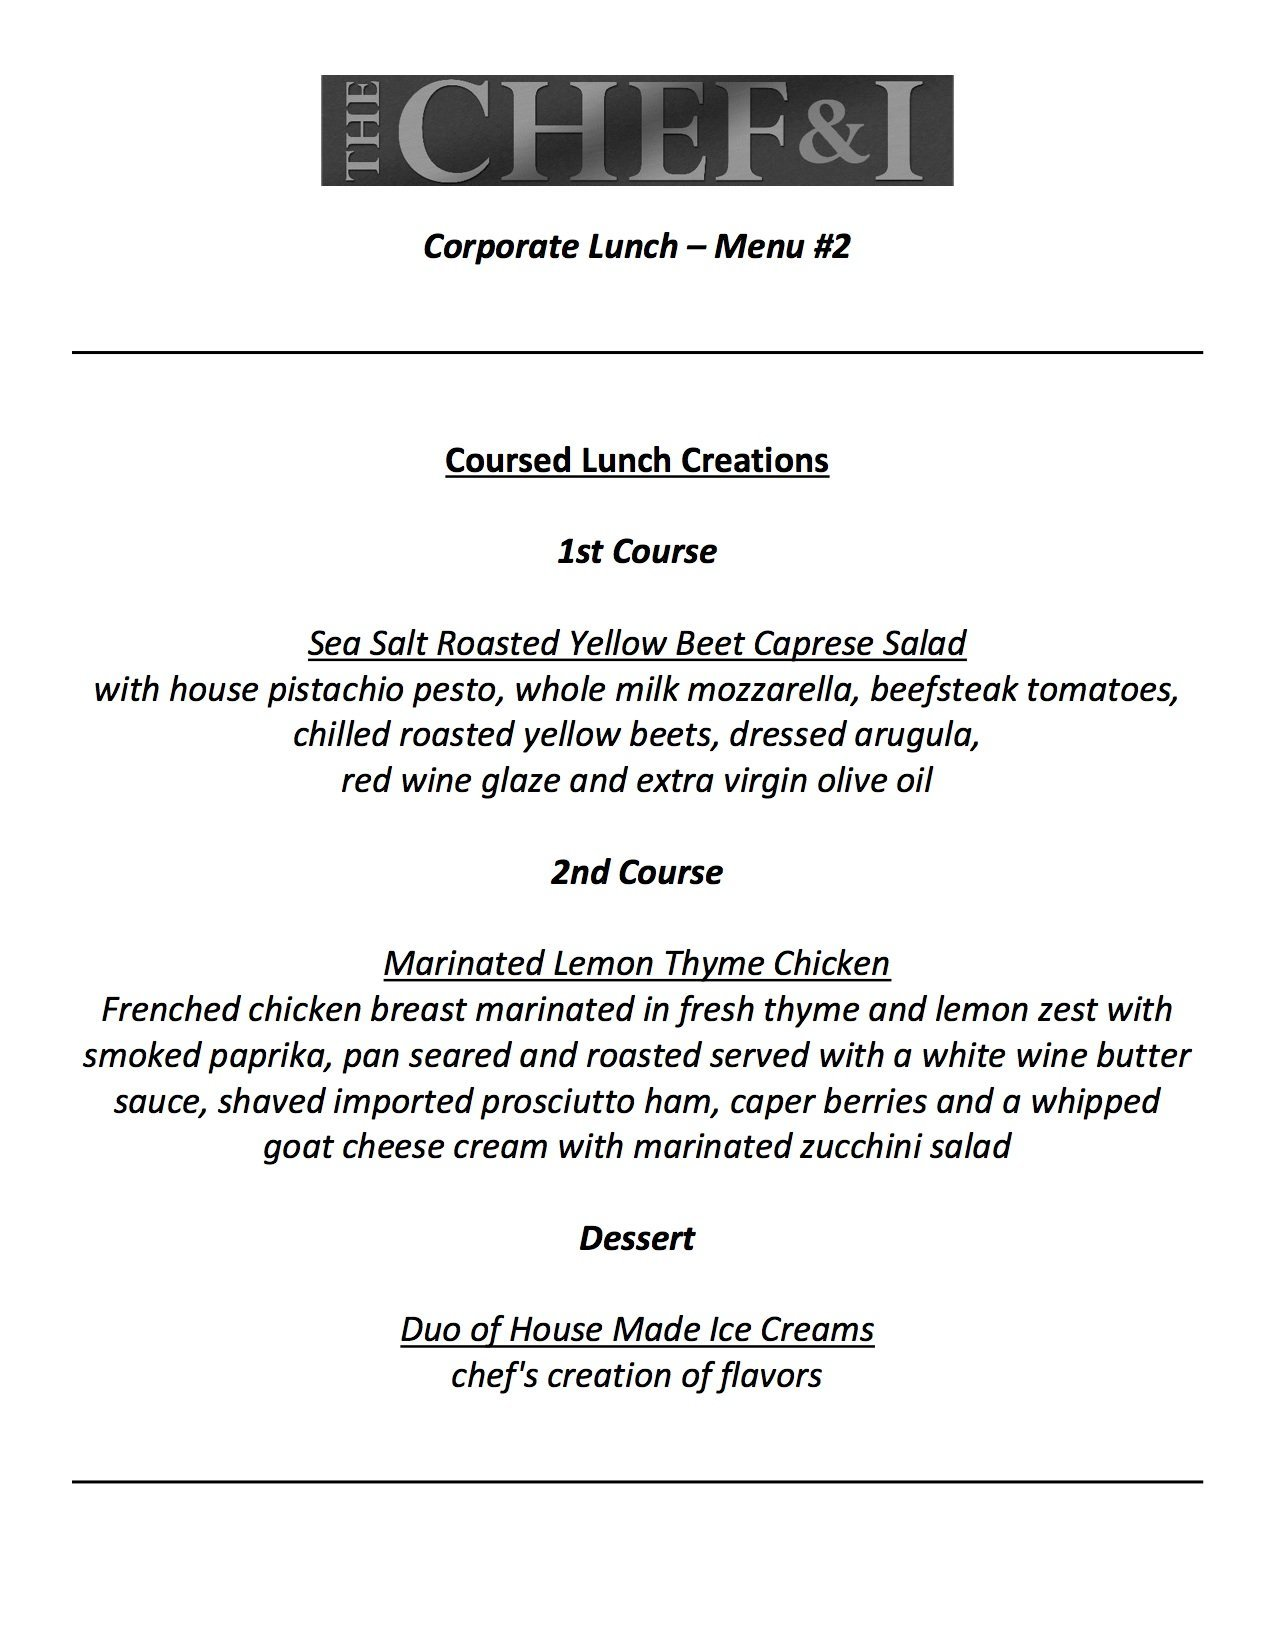 Corporate Lunch Menu 2